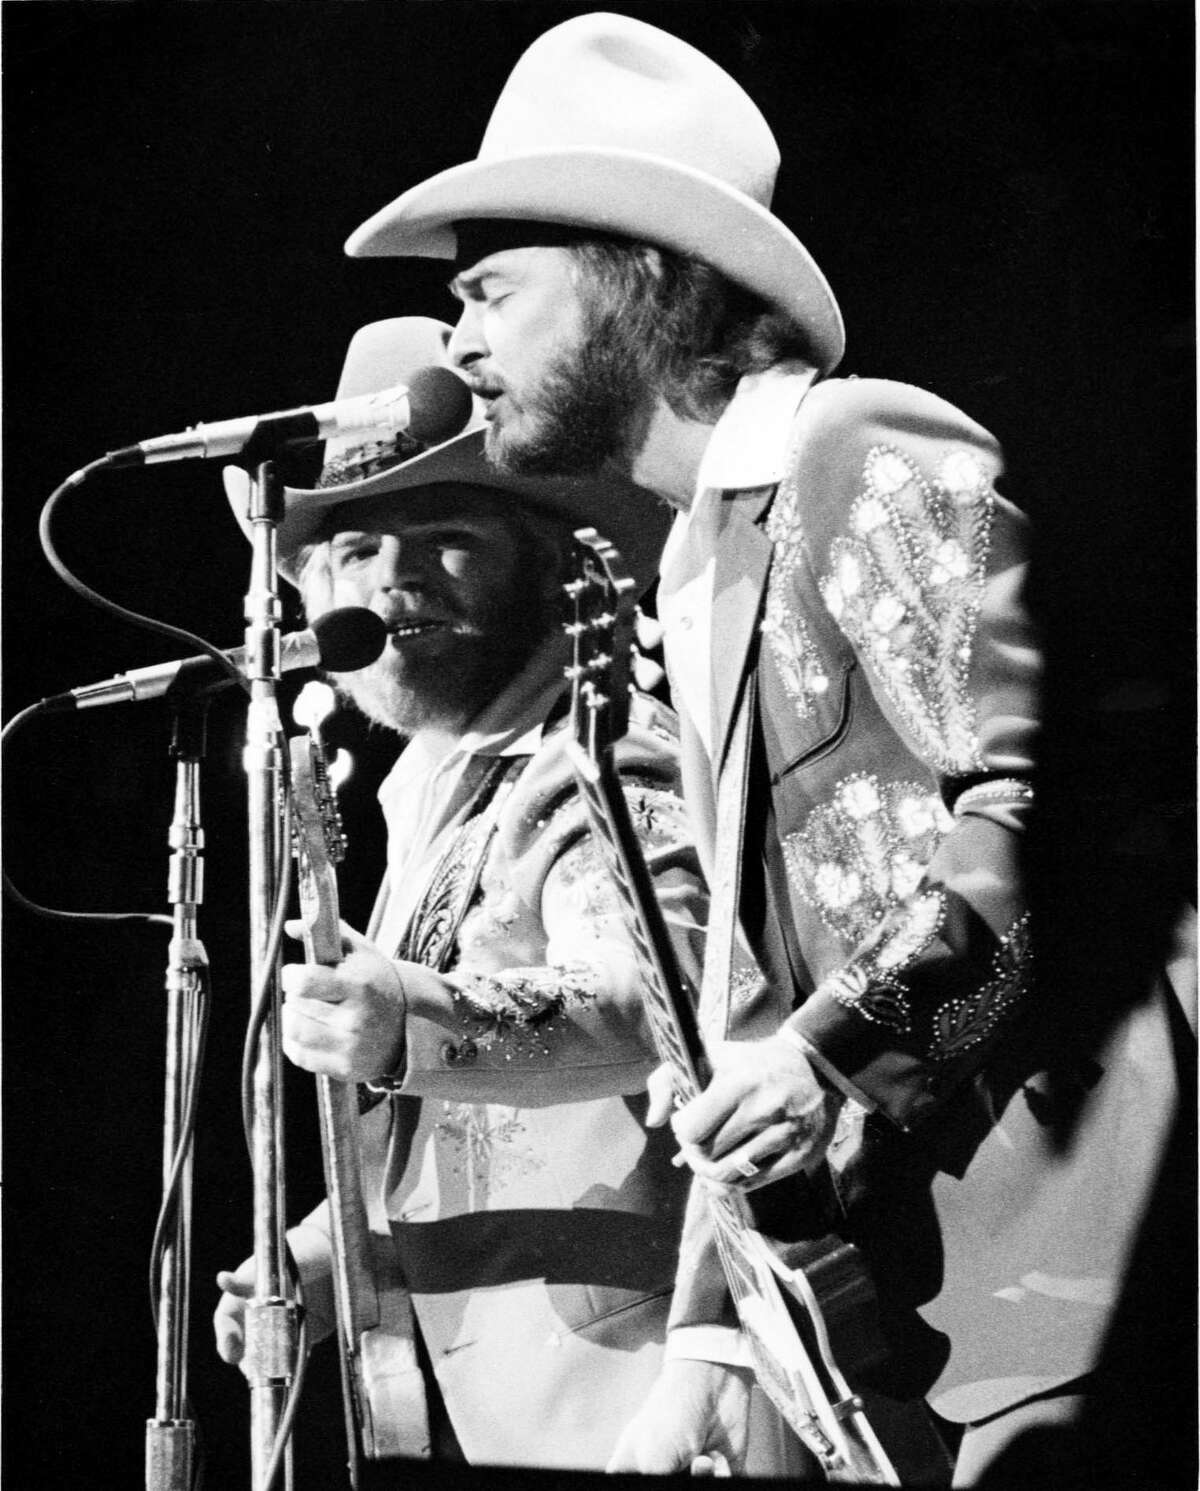 ZZ Top (Dusty Hill, left, and Billy Gibbons) performed in Houston at The Summit in 1975.